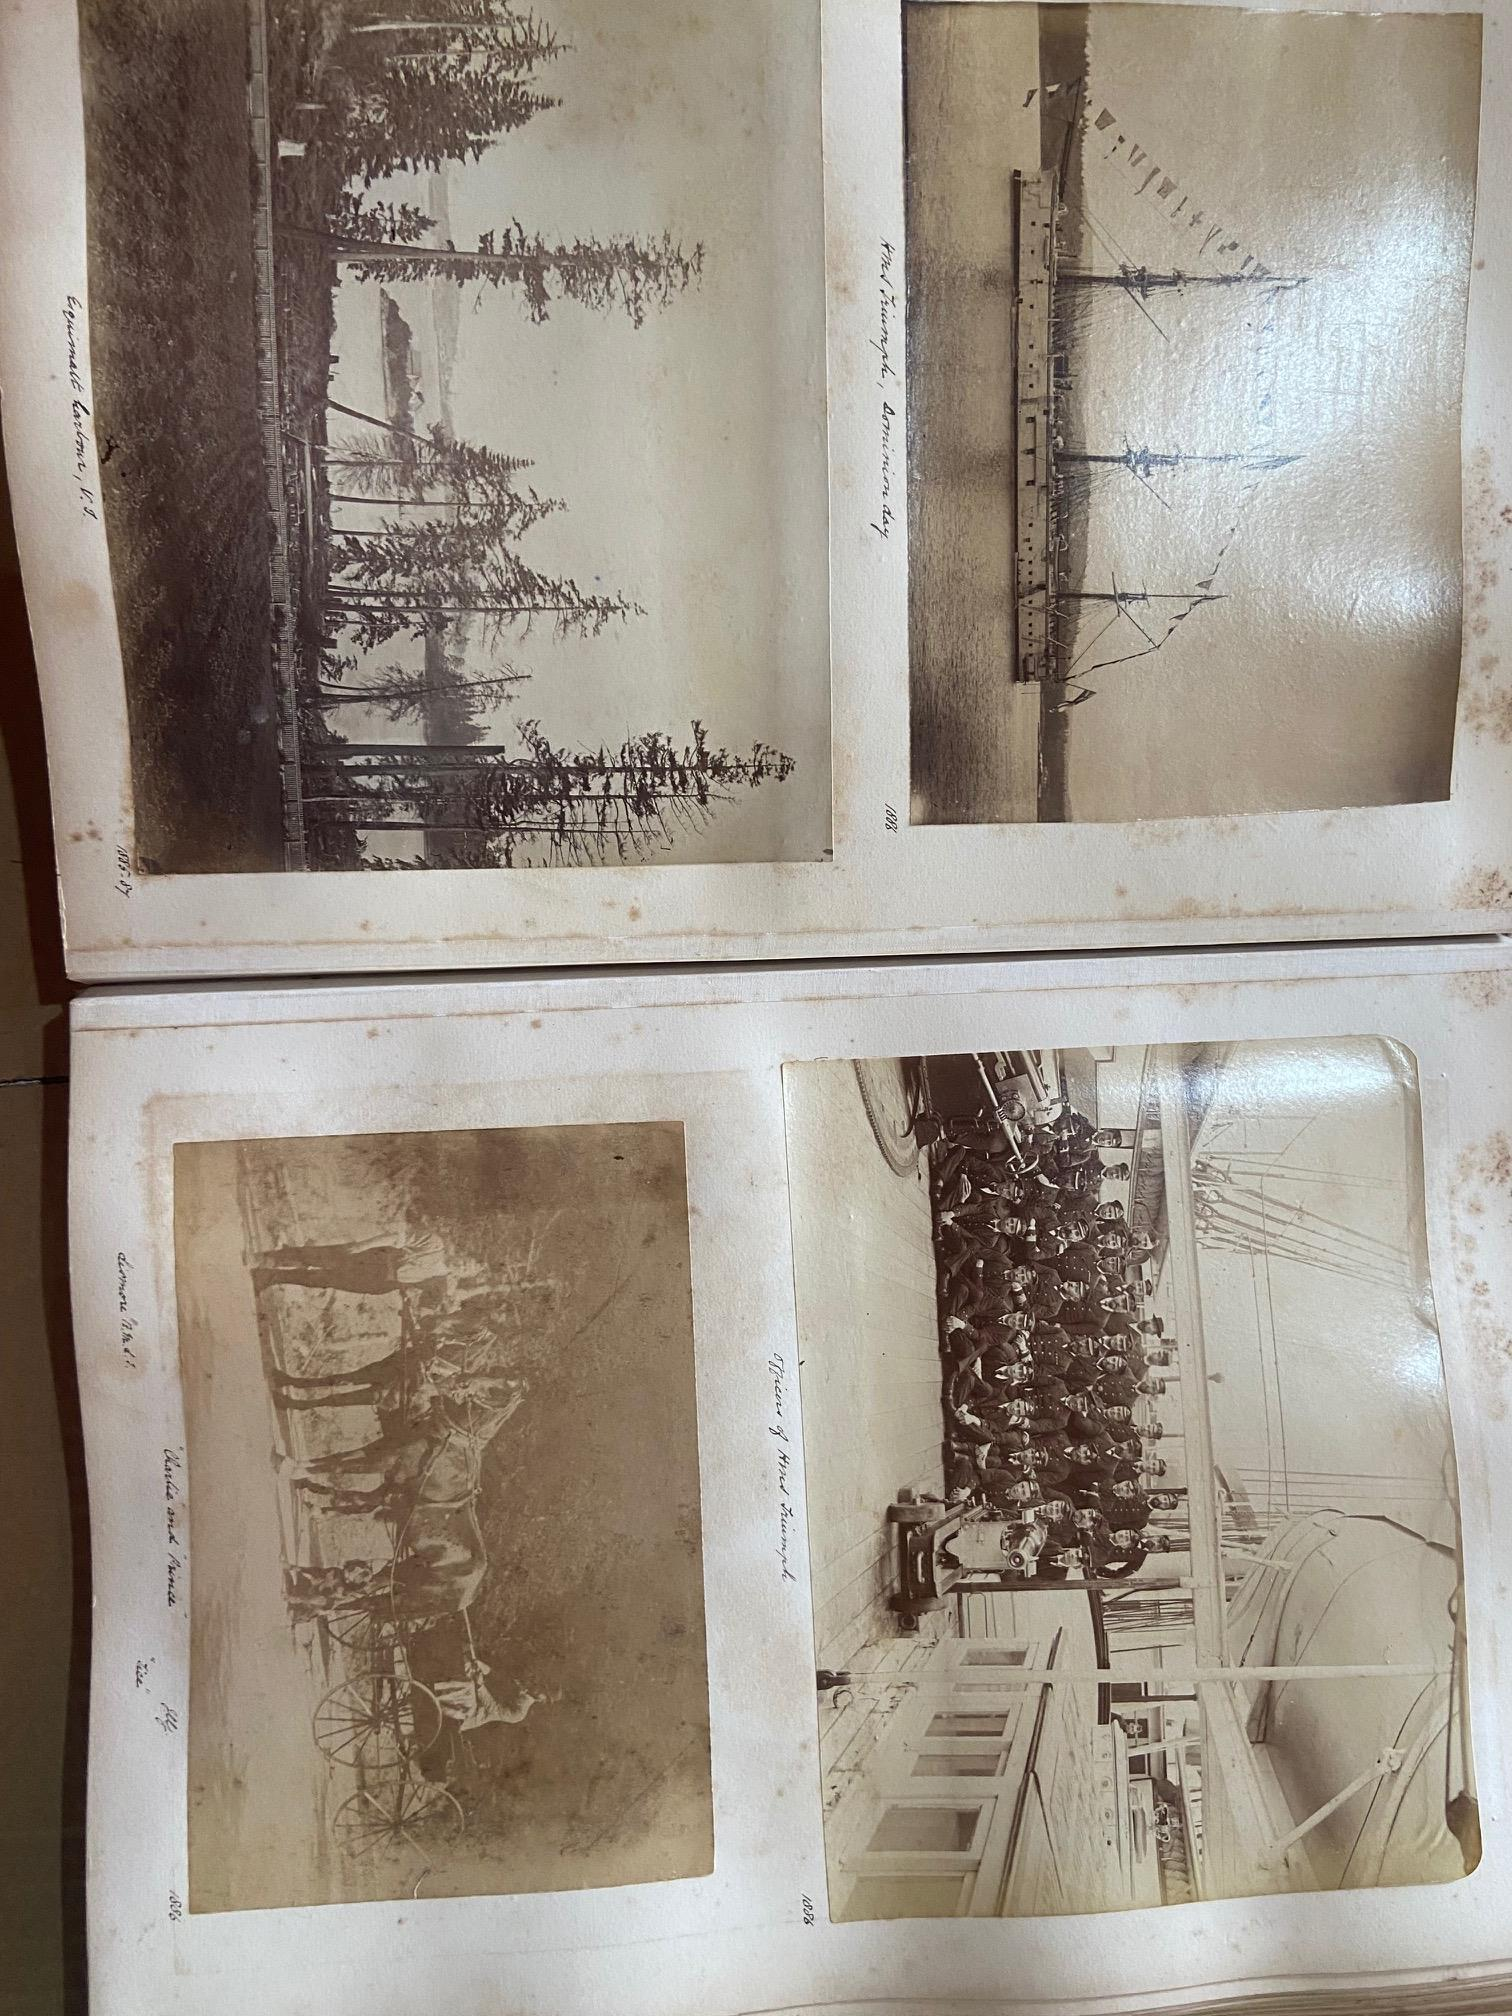 Photographs: Two large folio Albums of Photographs, each c. 1870 - 1890's. One Album contains - Image 15 of 31